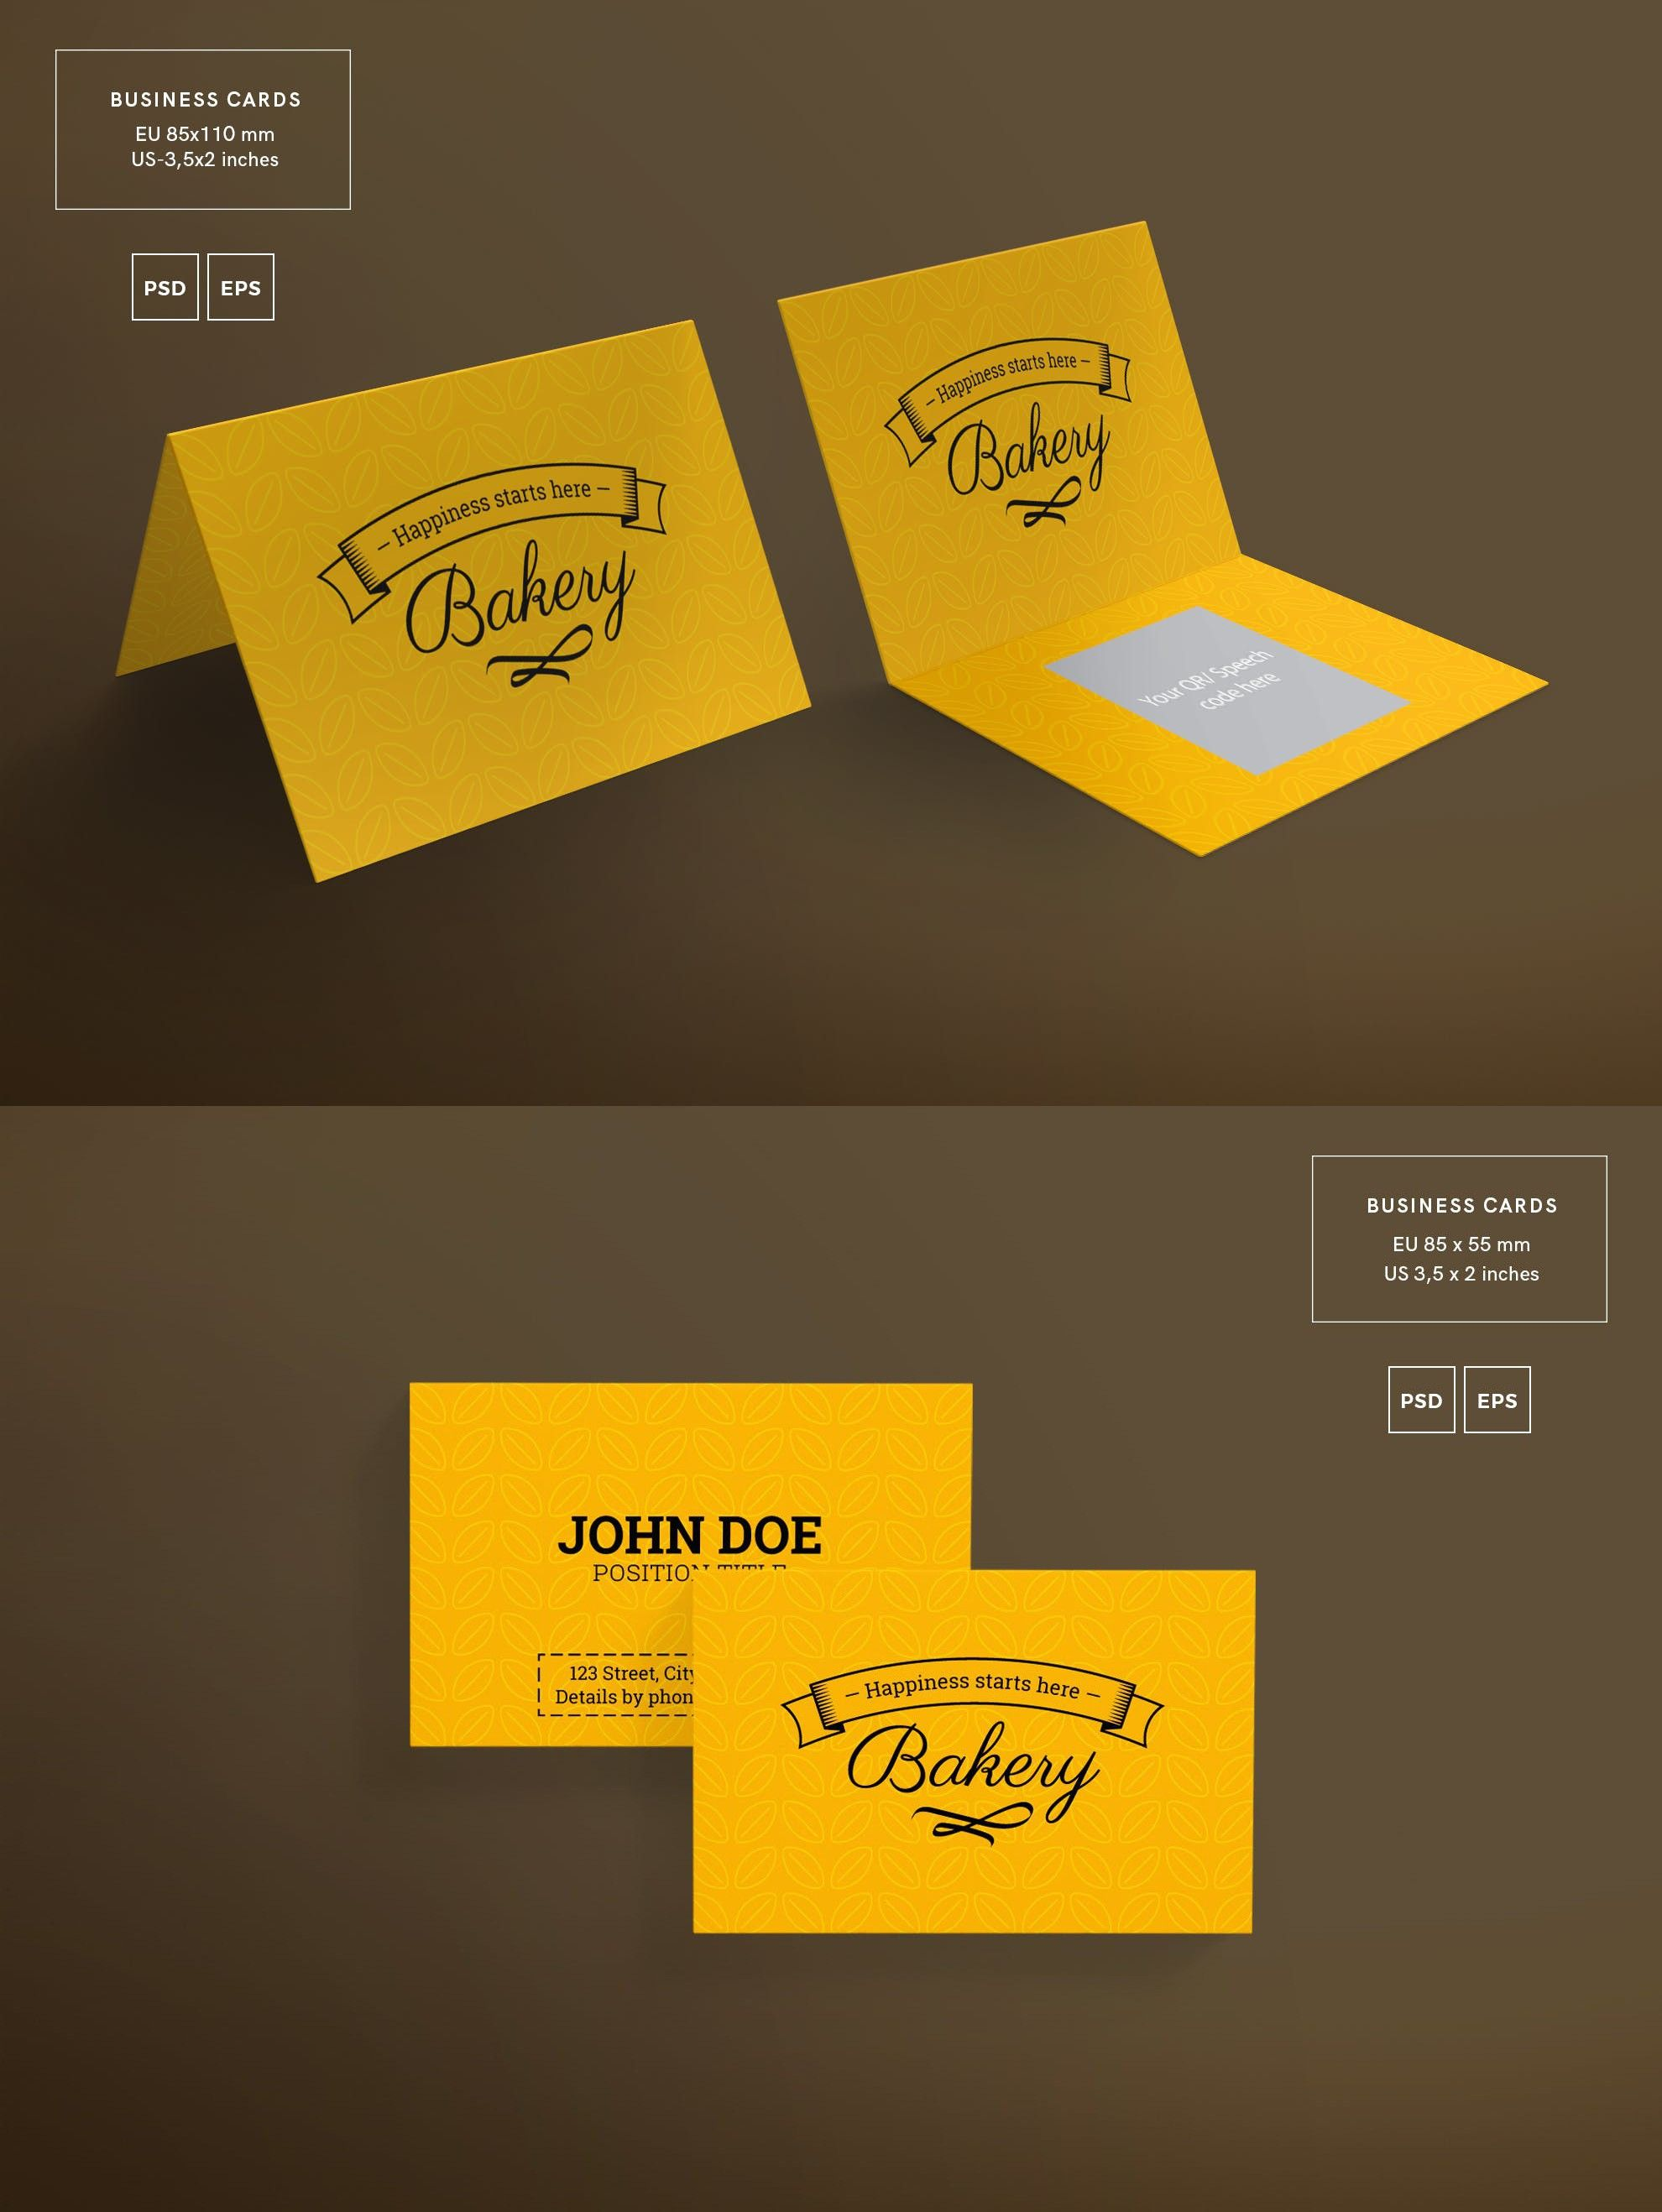 Bakery Food Business Card Template By Ambergraphics On Envato Elements Bakery Business Cards Templates Food Business Card Bakery Business Cards